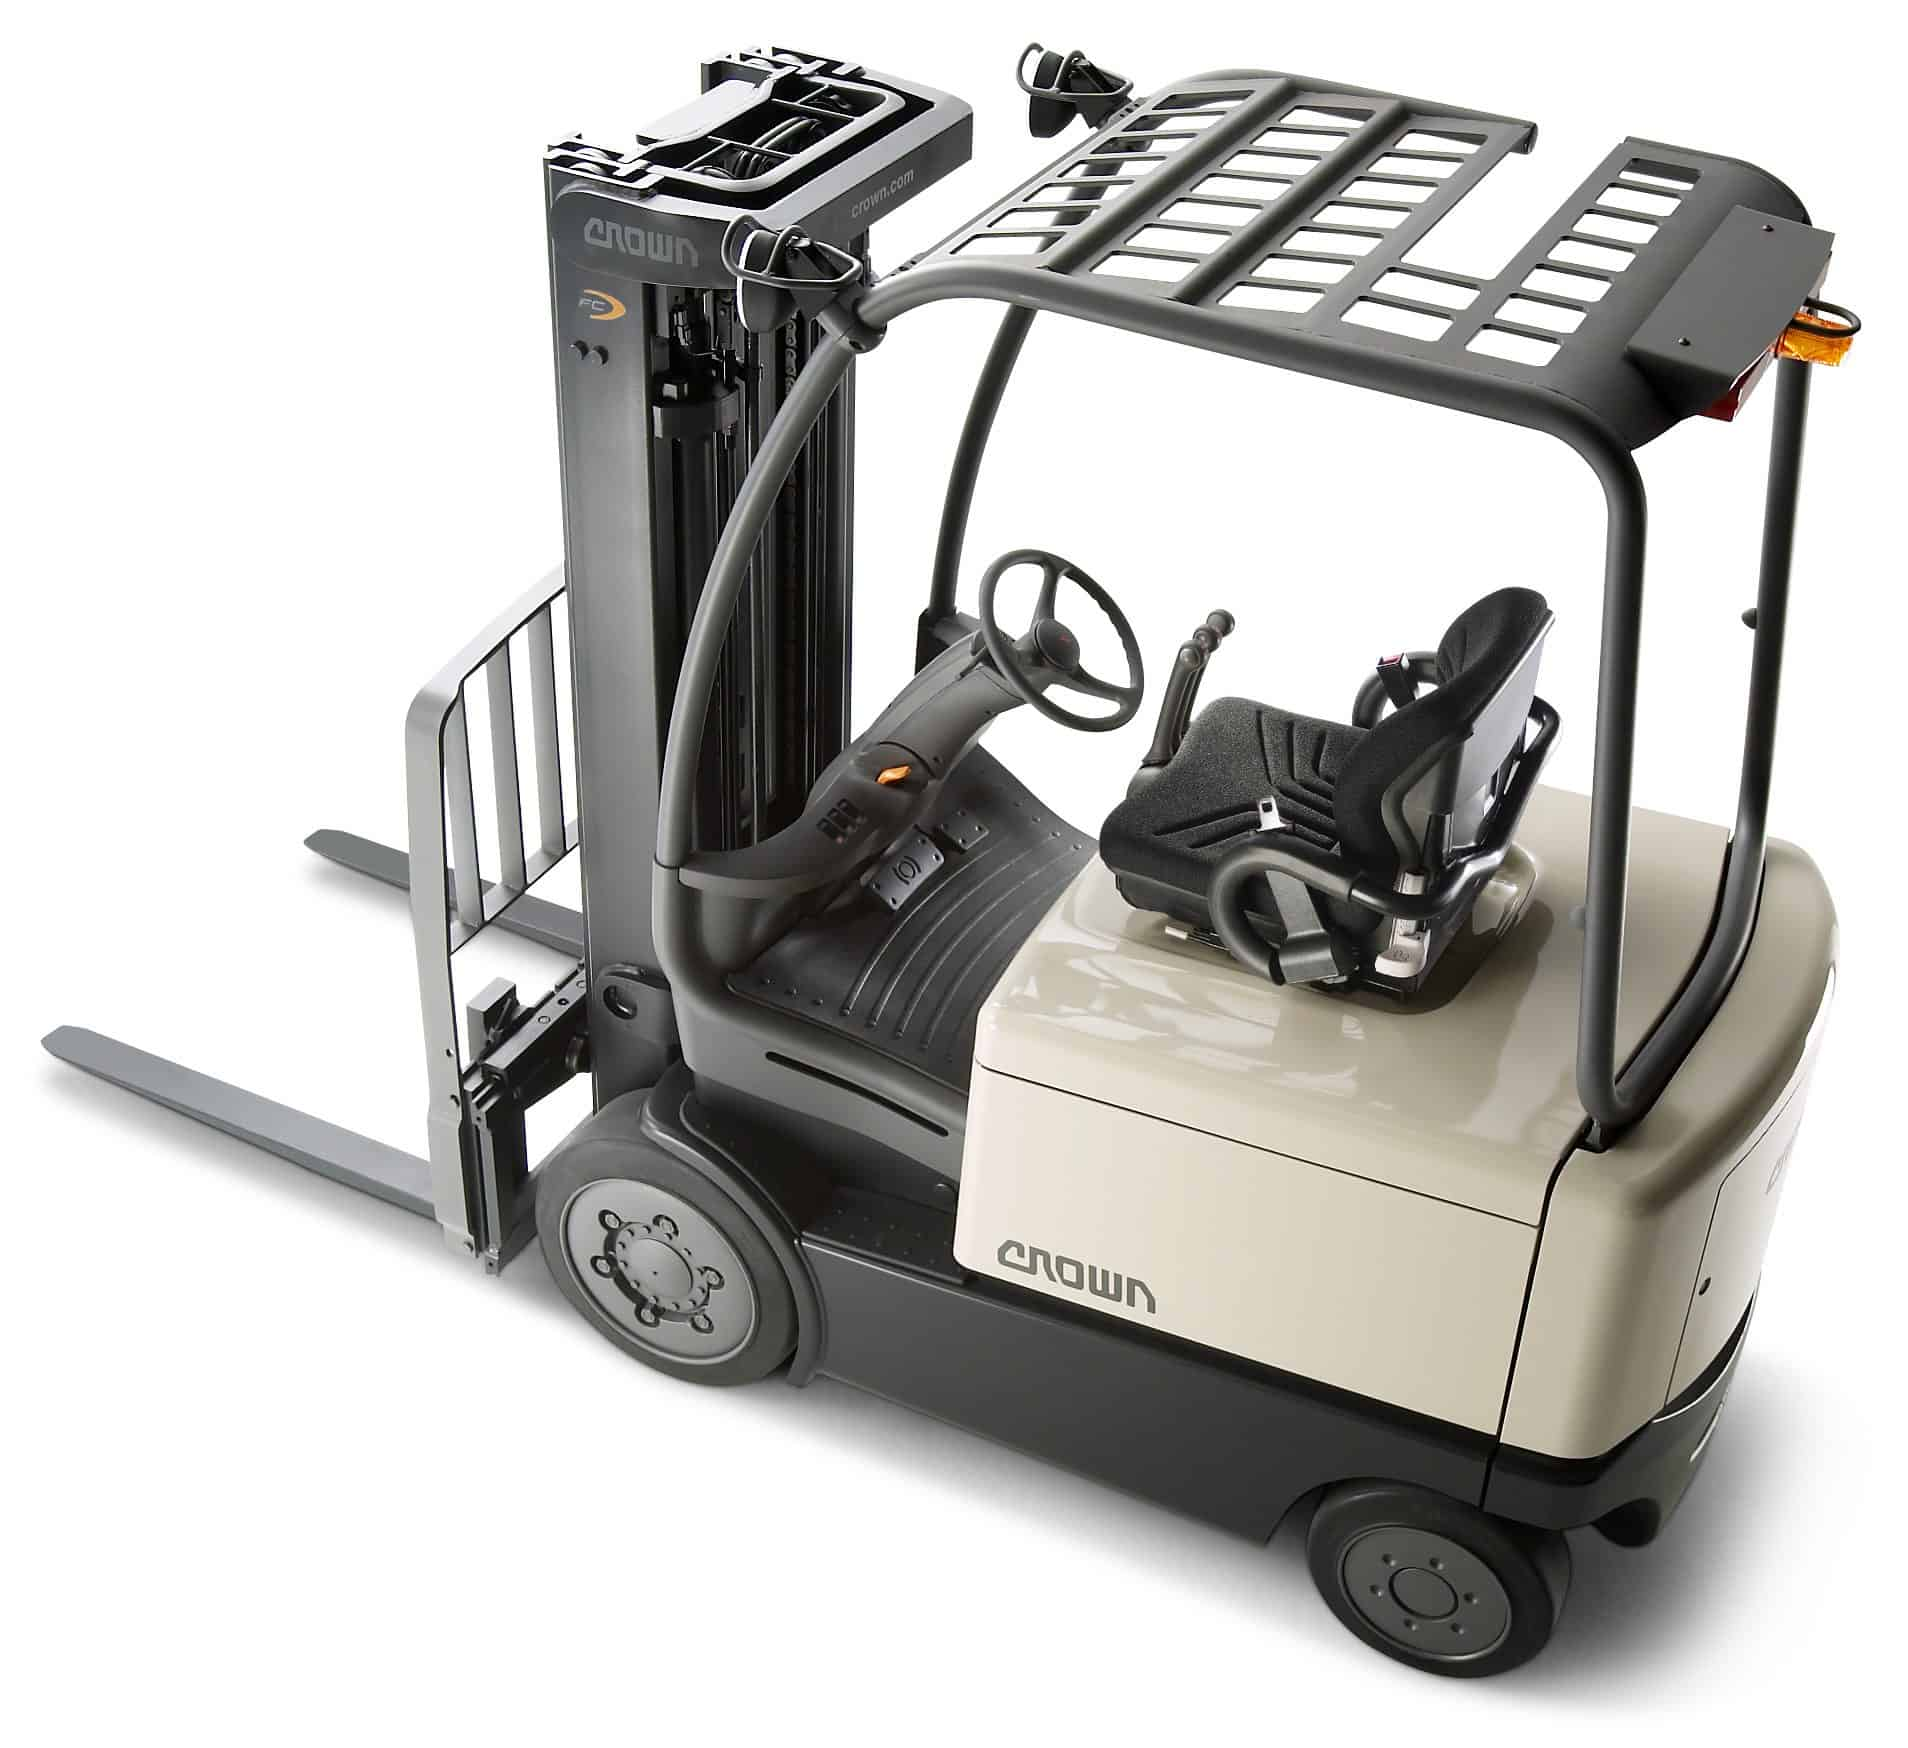 crown fc 4500 crown fc4500 forklift service manual download the pdf crown rc 3000 wiring diagram at webbmarketing.co